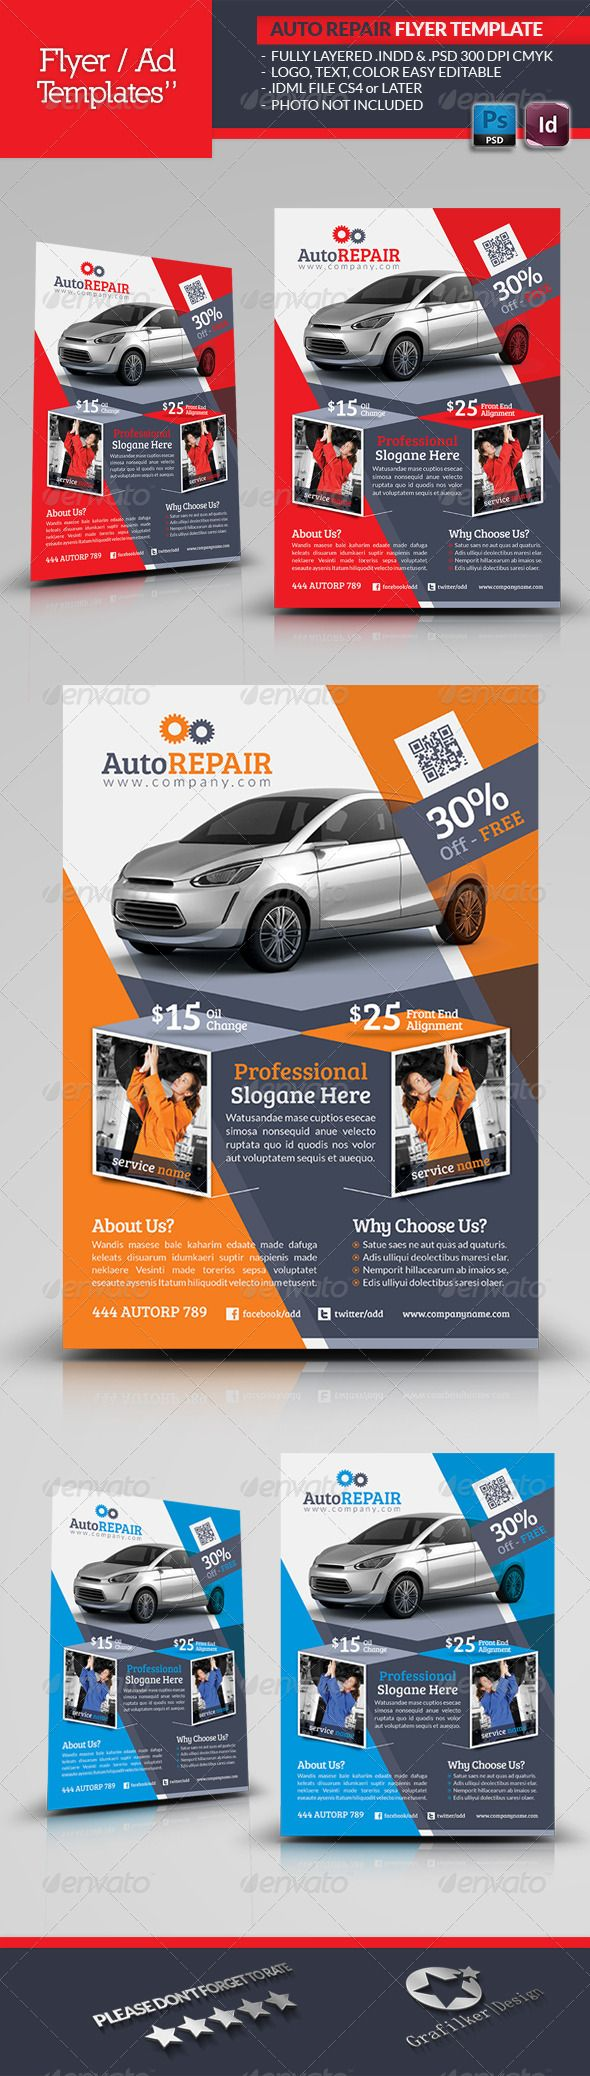 39 best images about About Car – Car for Sale Flyer Template